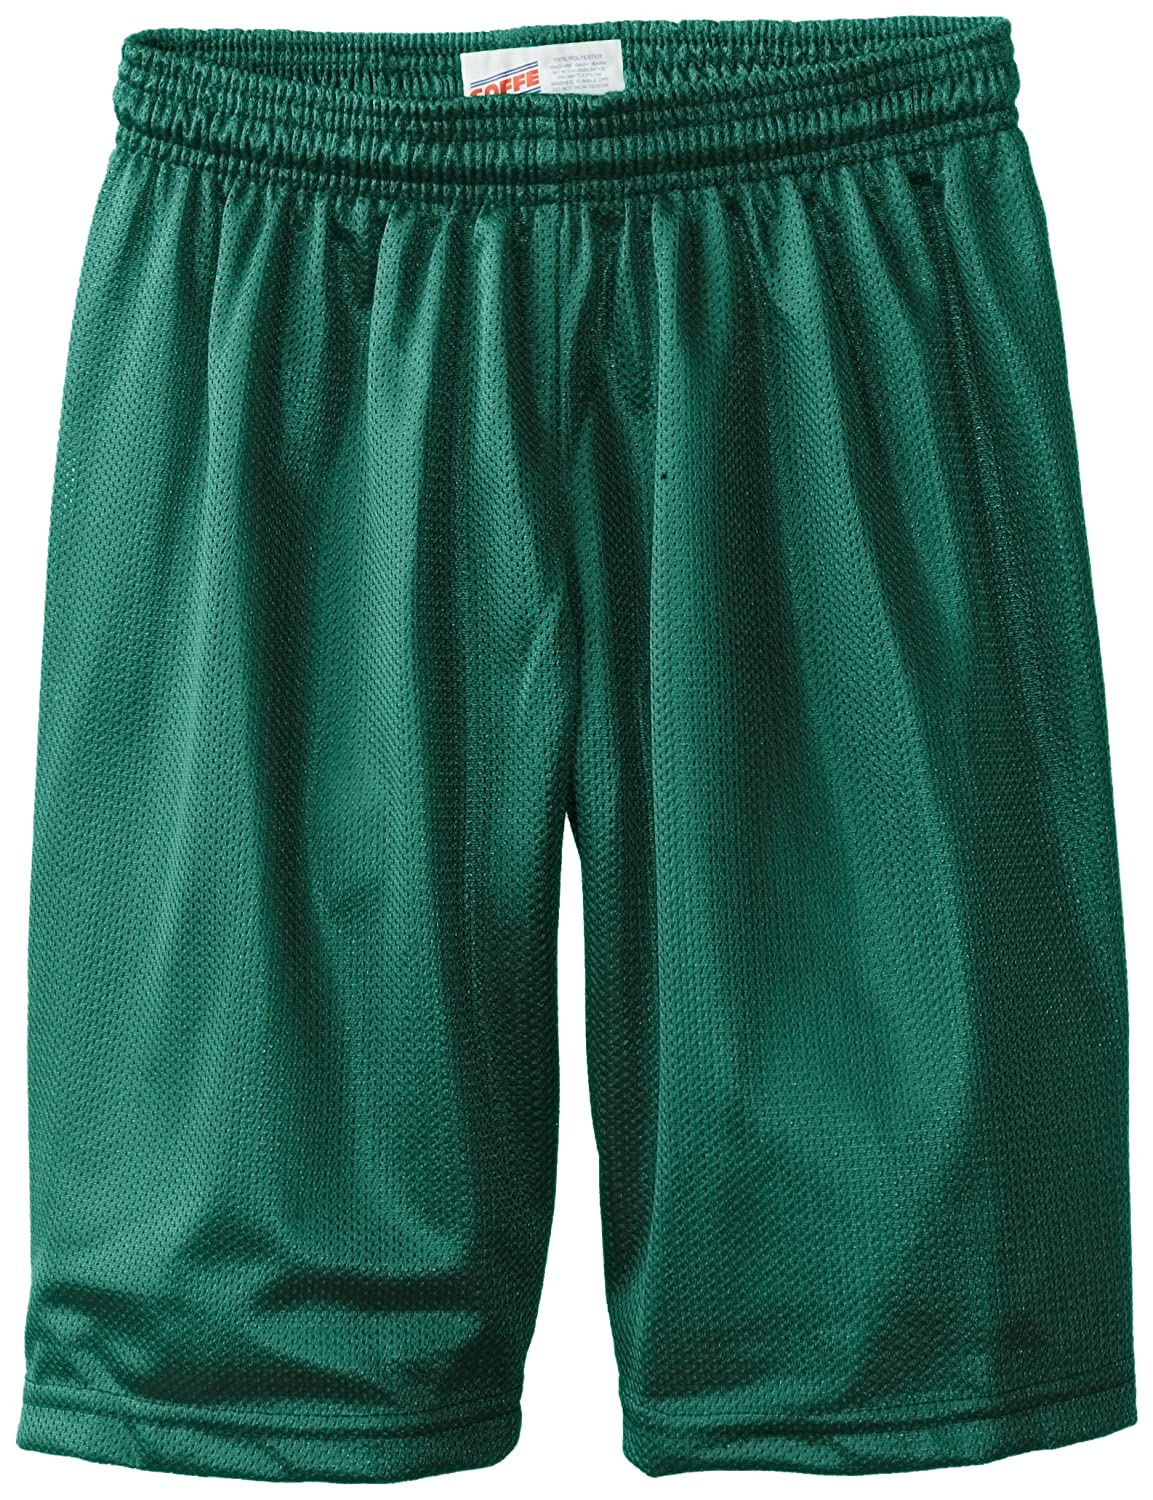 Soffe Big Boys' 7-Inch Poly Mesh Short M J Soffe - Kids 060B